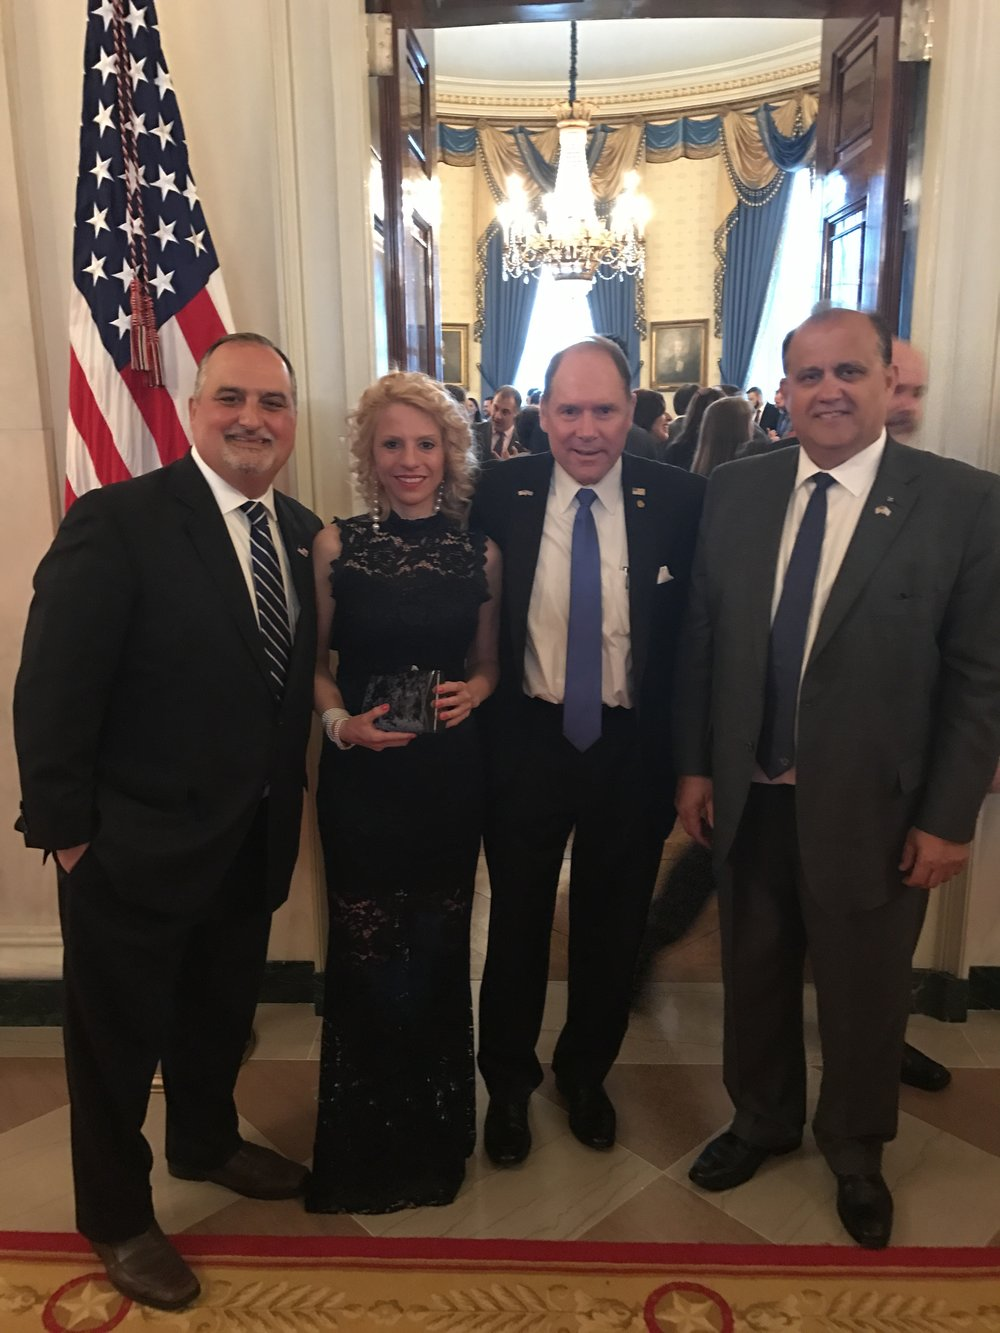 (L-R) Michael Karloutsos, Deputy Chief of Protocol, U.S. Department of State; Athina Balta, Carl R. Hollister, Supreme President, Order of AHEPA; Nick Larigakis.